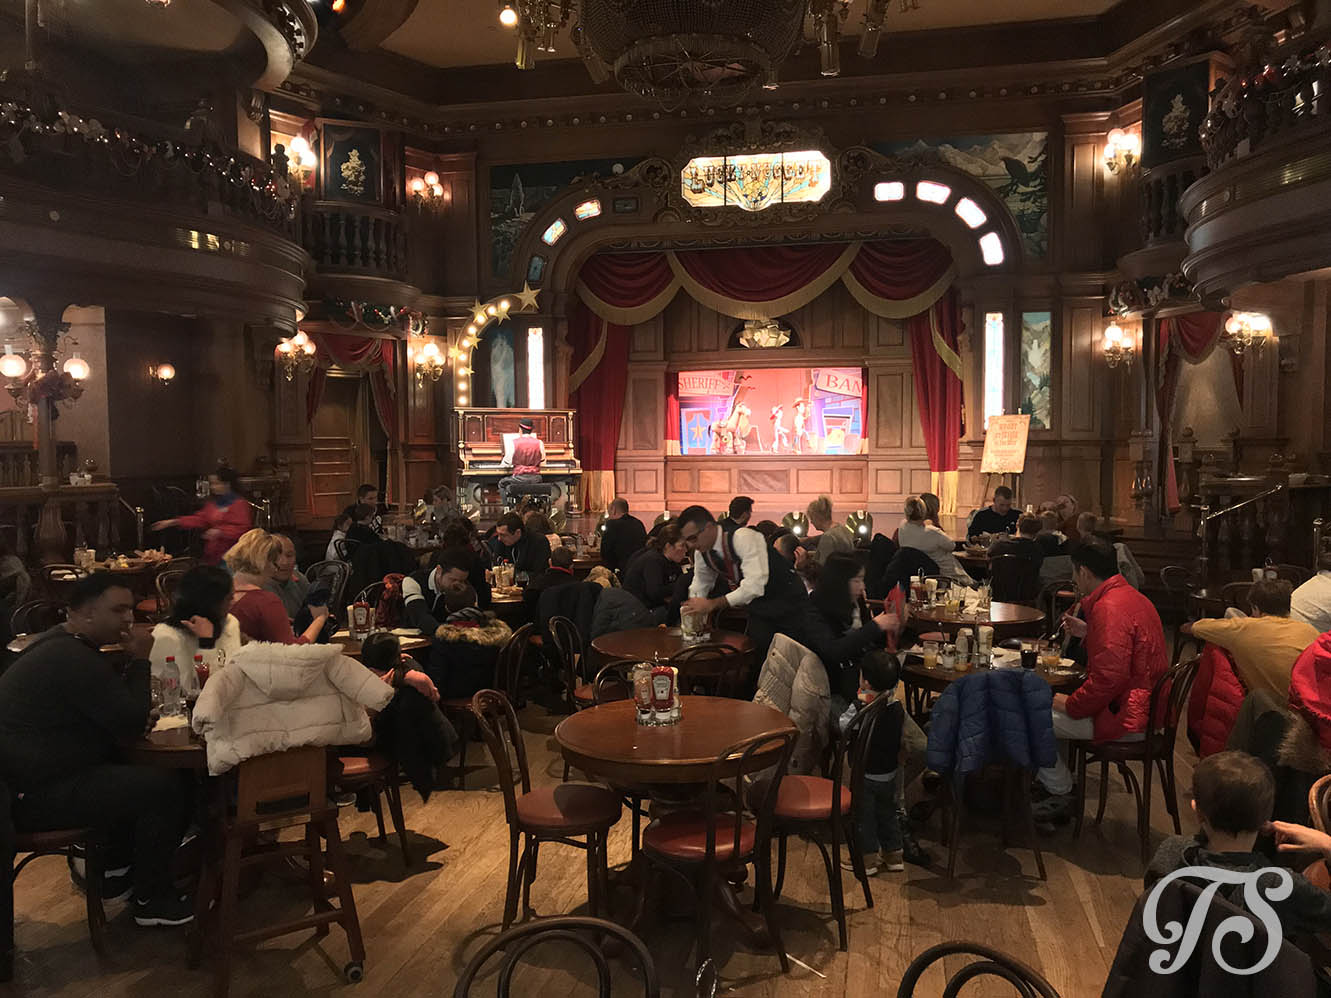 The interior of the Lucky Nugget Saloon at Disneyland Paris